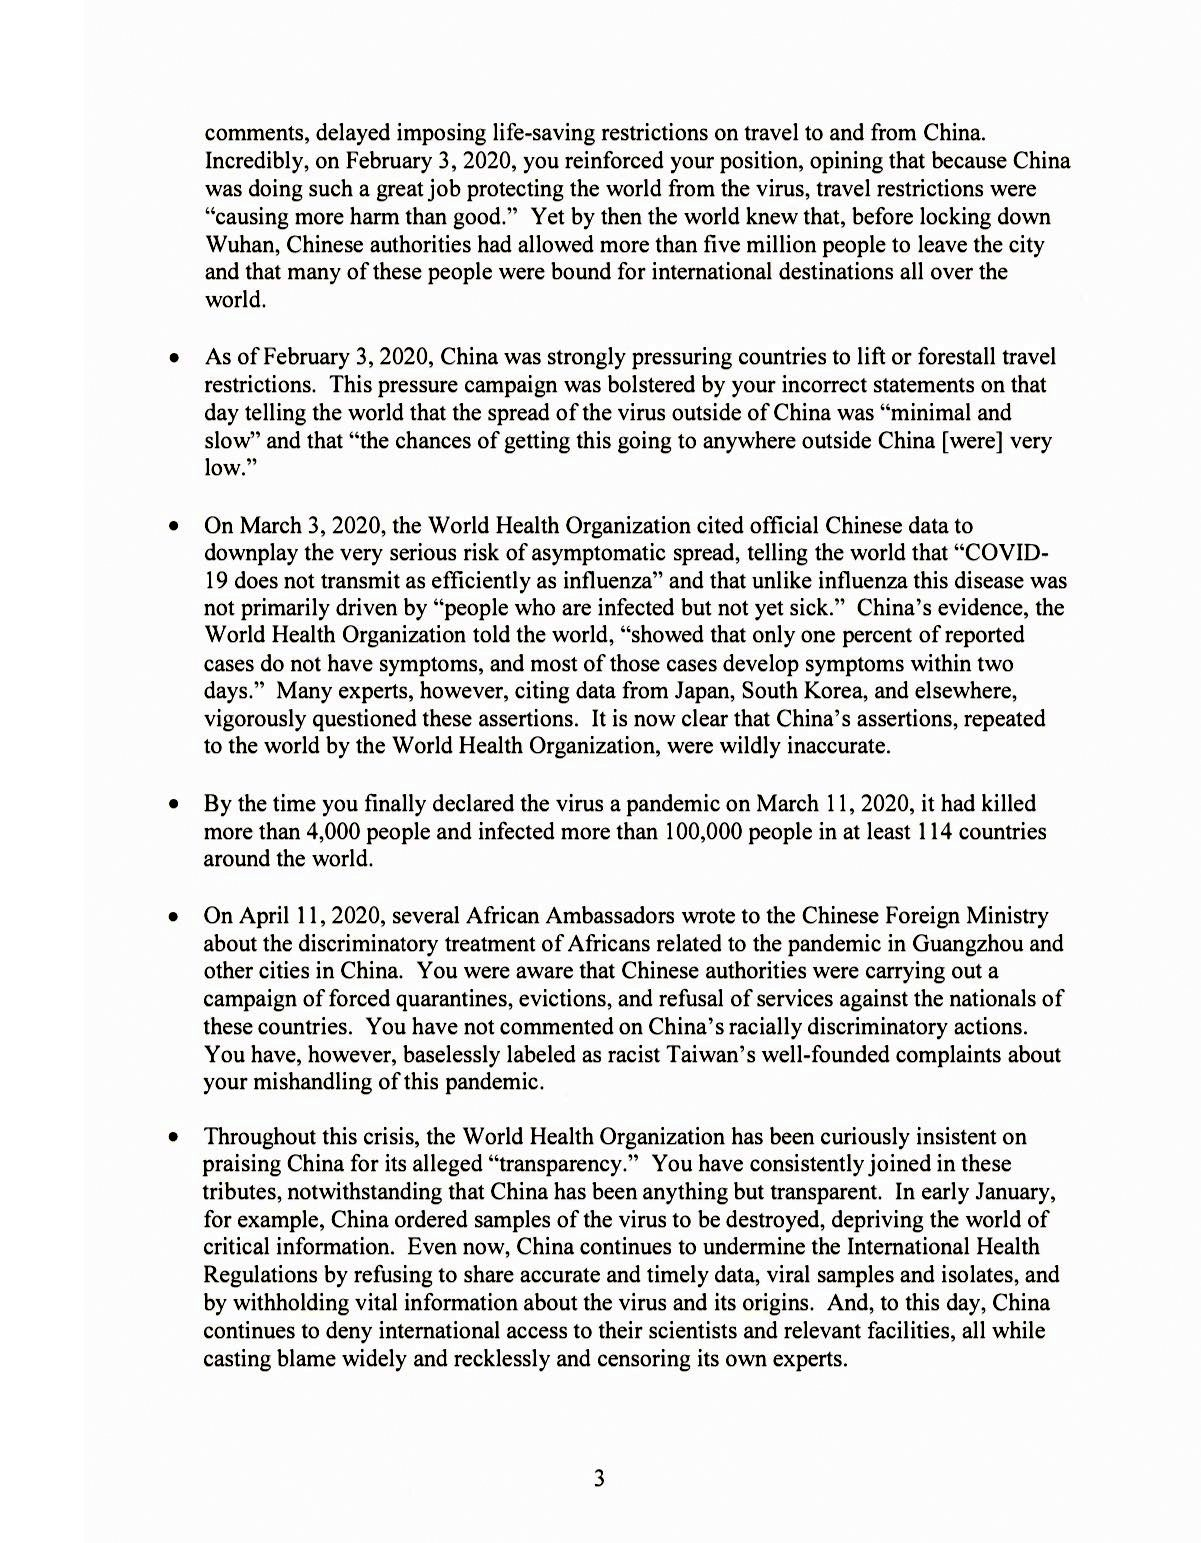 Trump's letter to WHO 18 May 2020, page 3